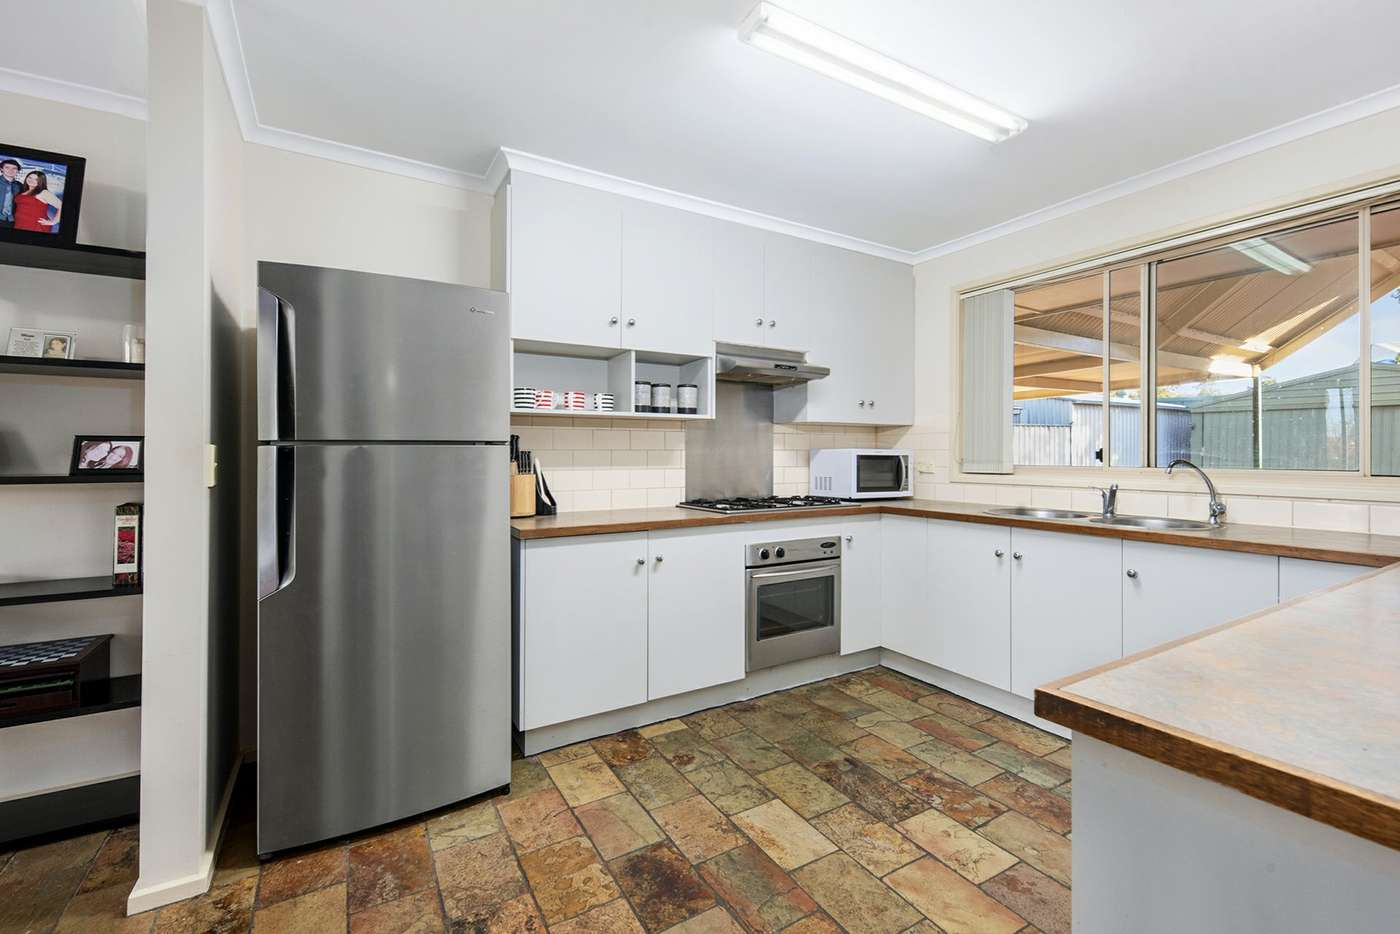 Main view of Homely house listing, 9 Berriview Court, Berri SA 5343